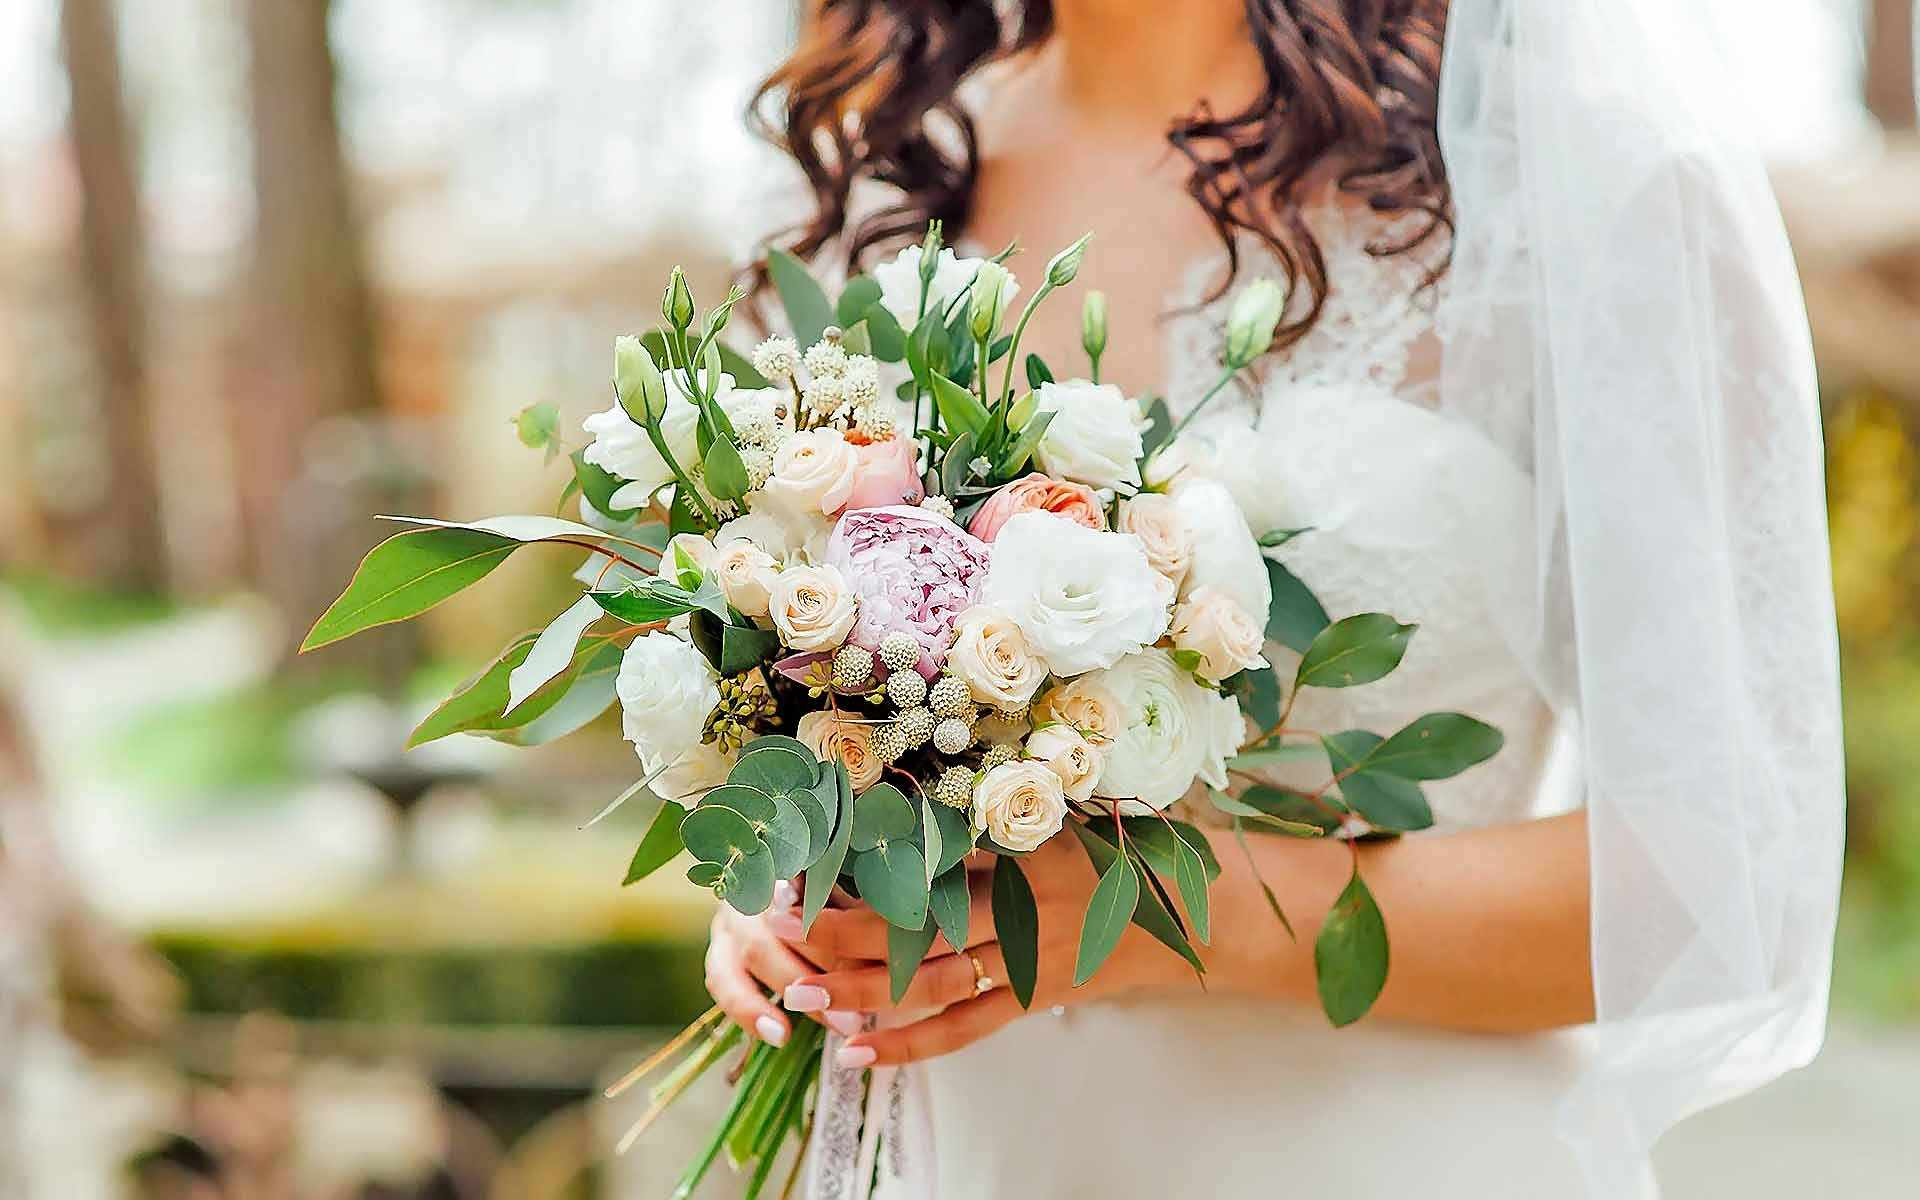 Stunning-Wedding-Bouquet-by-Diamond-Events-Wedding-Event-planning-services